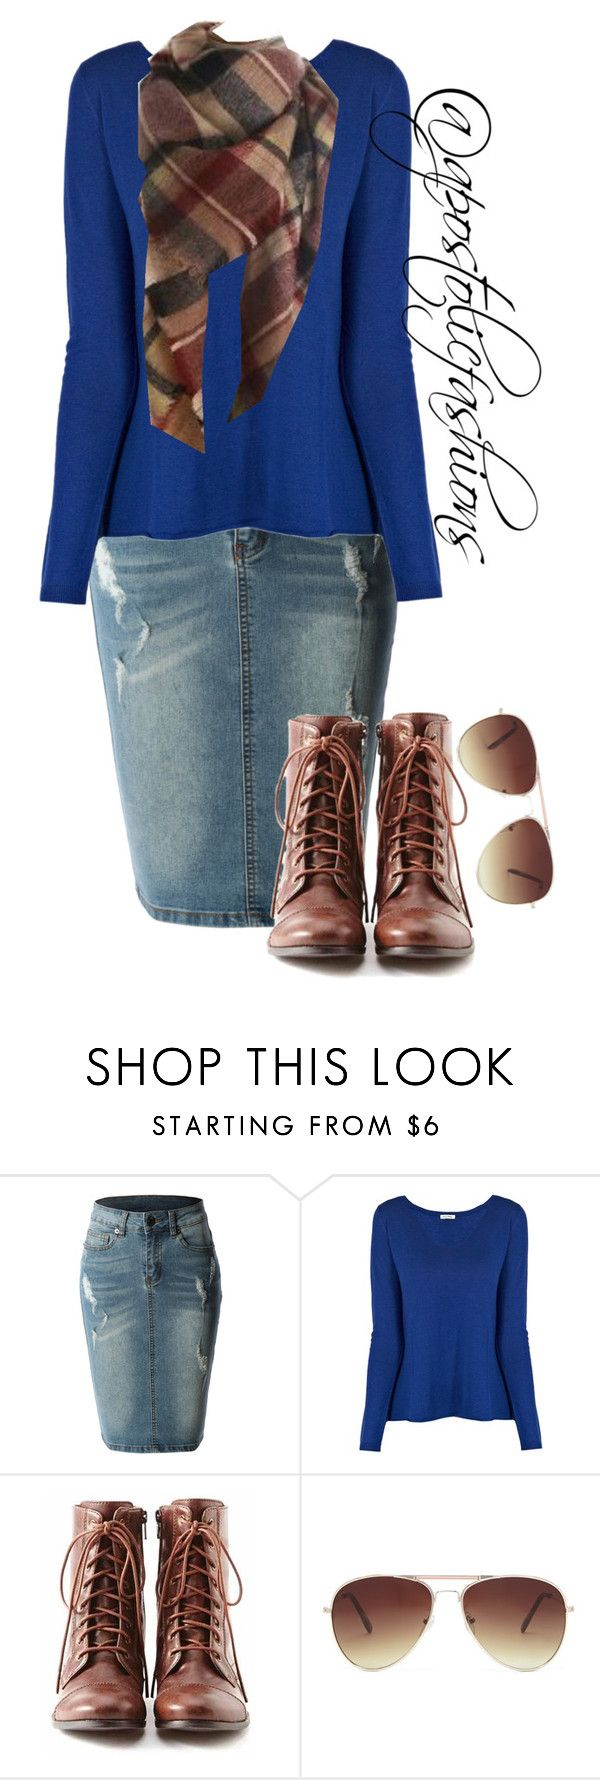 """Apostolic Fashions #909"" by apostolicfashions on Polyvore featuring LE3NO, American Vintage, Liz Claiborne and Forever 21"